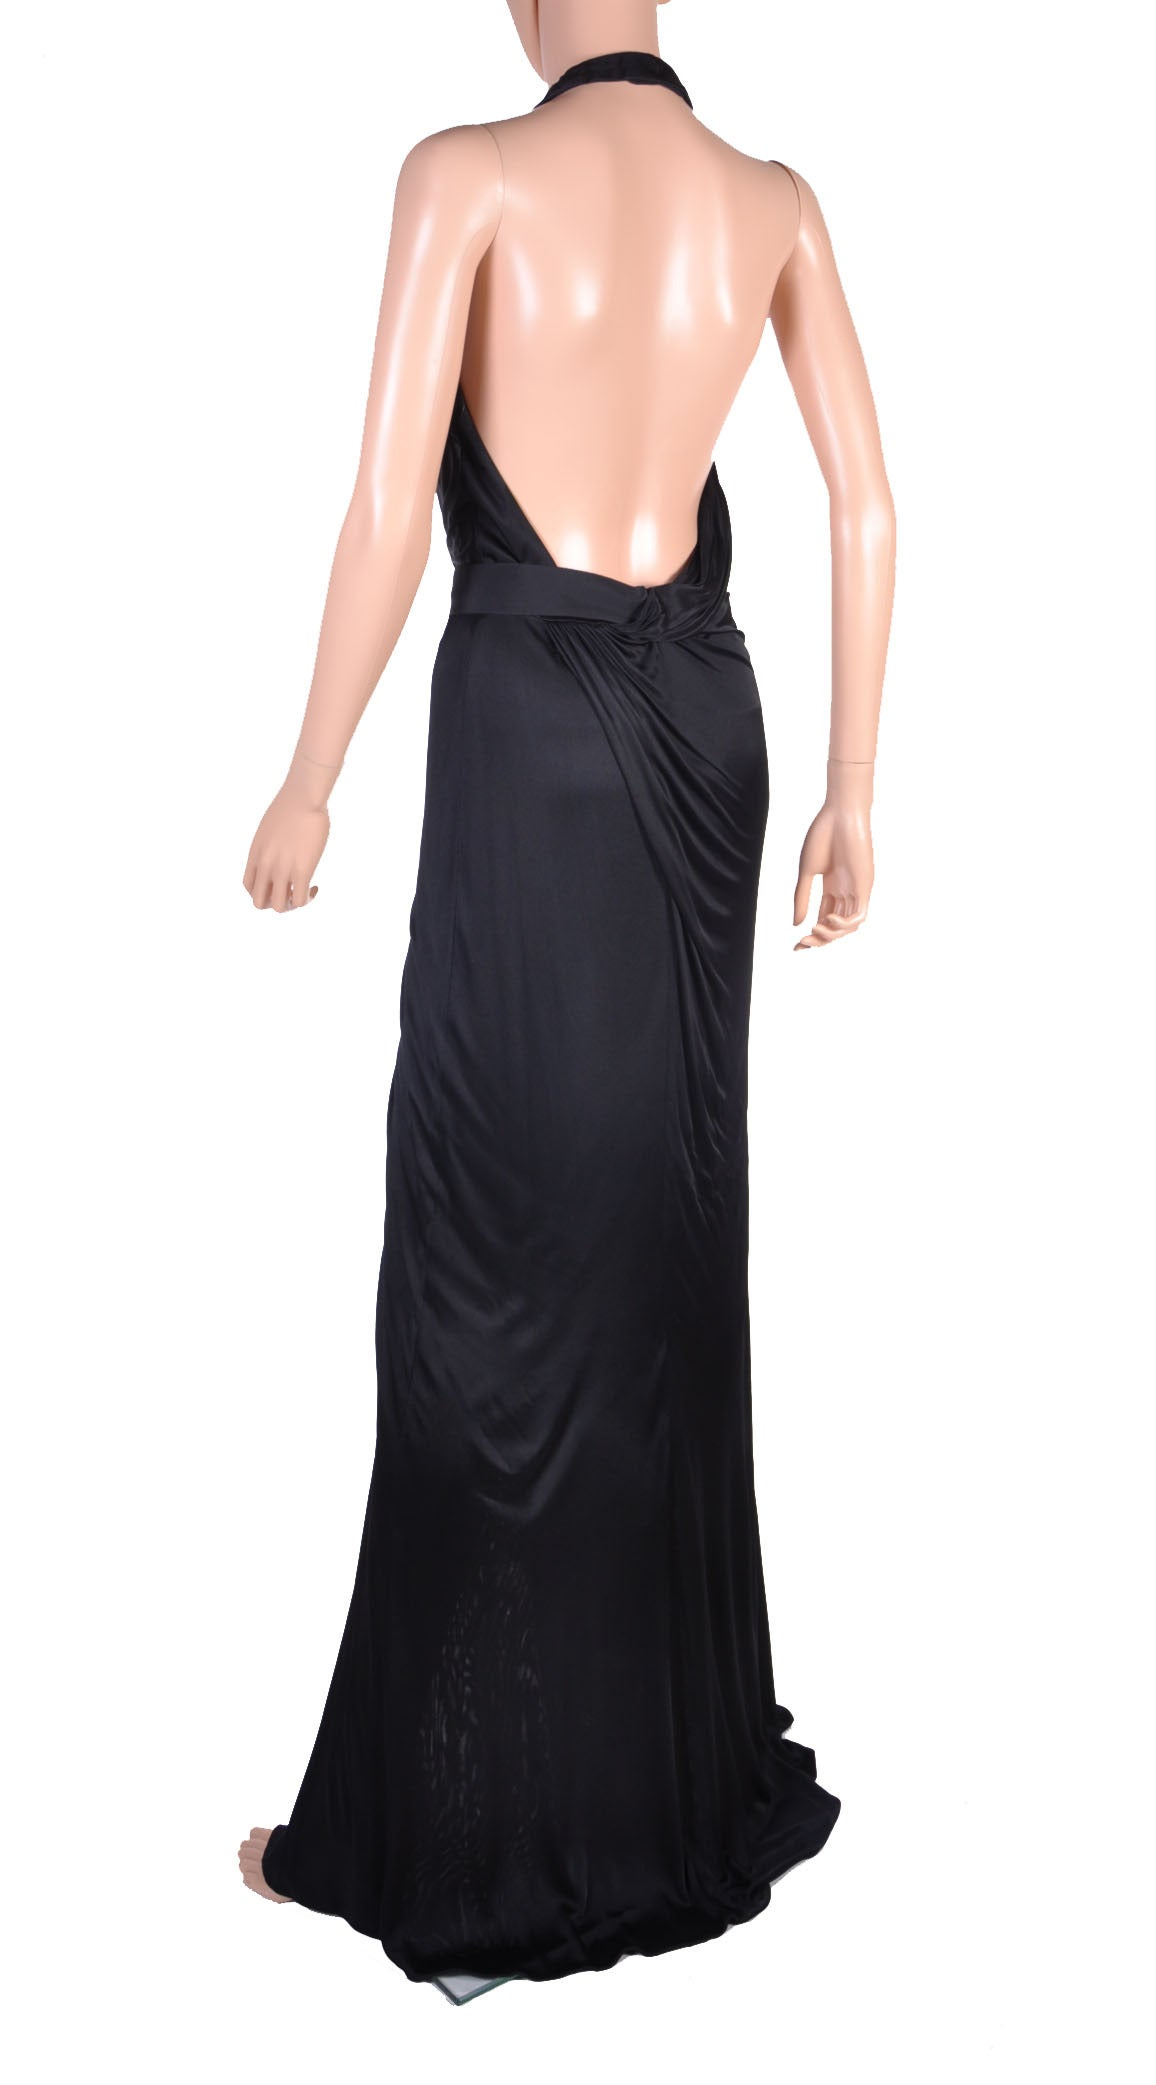 New VERSACE BLACK WRAP GOWN 5